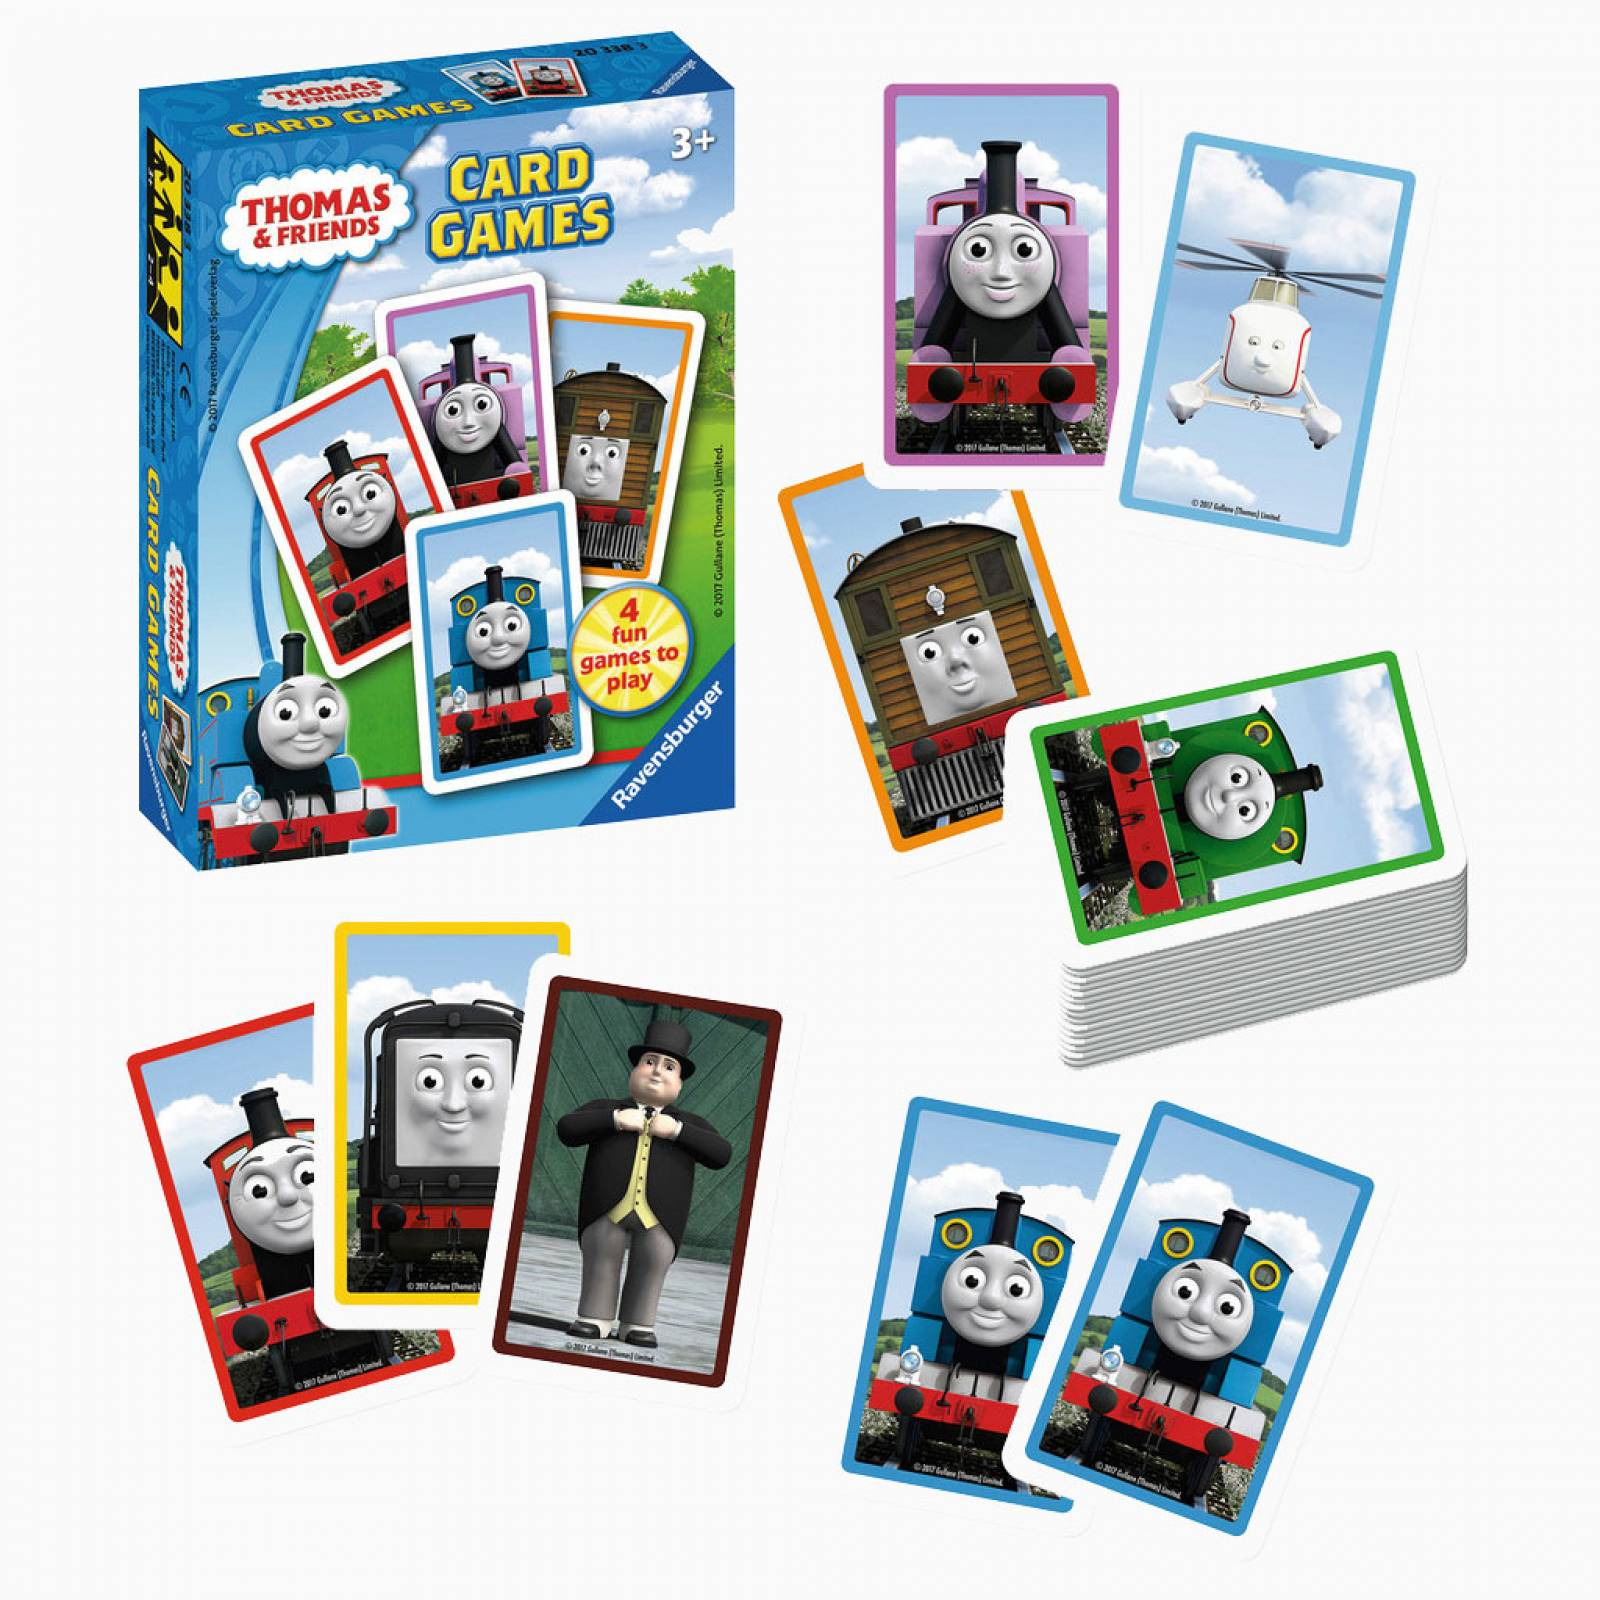 Thomas & Friends Card Games 3+ thumbnails